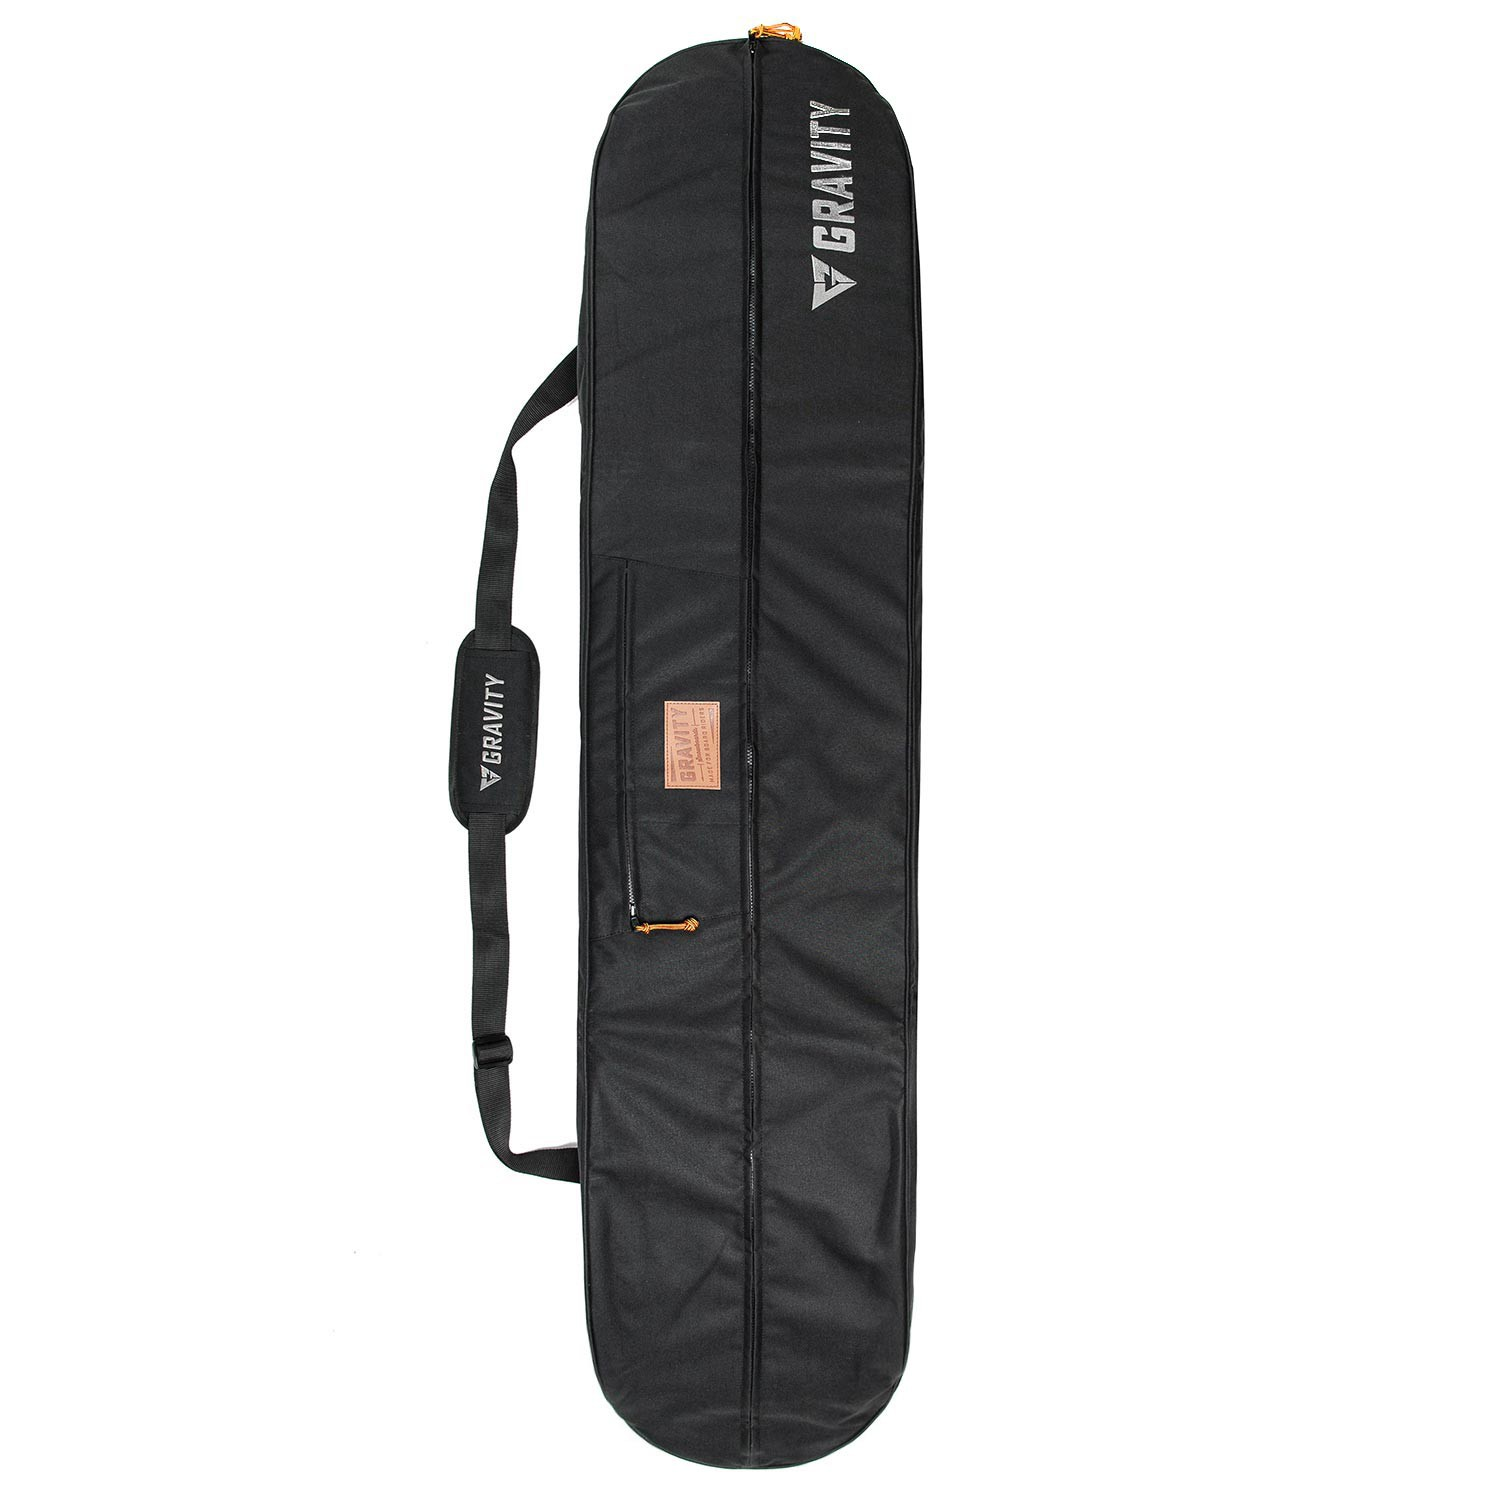 Obal na snowboard Gravity Scout all black